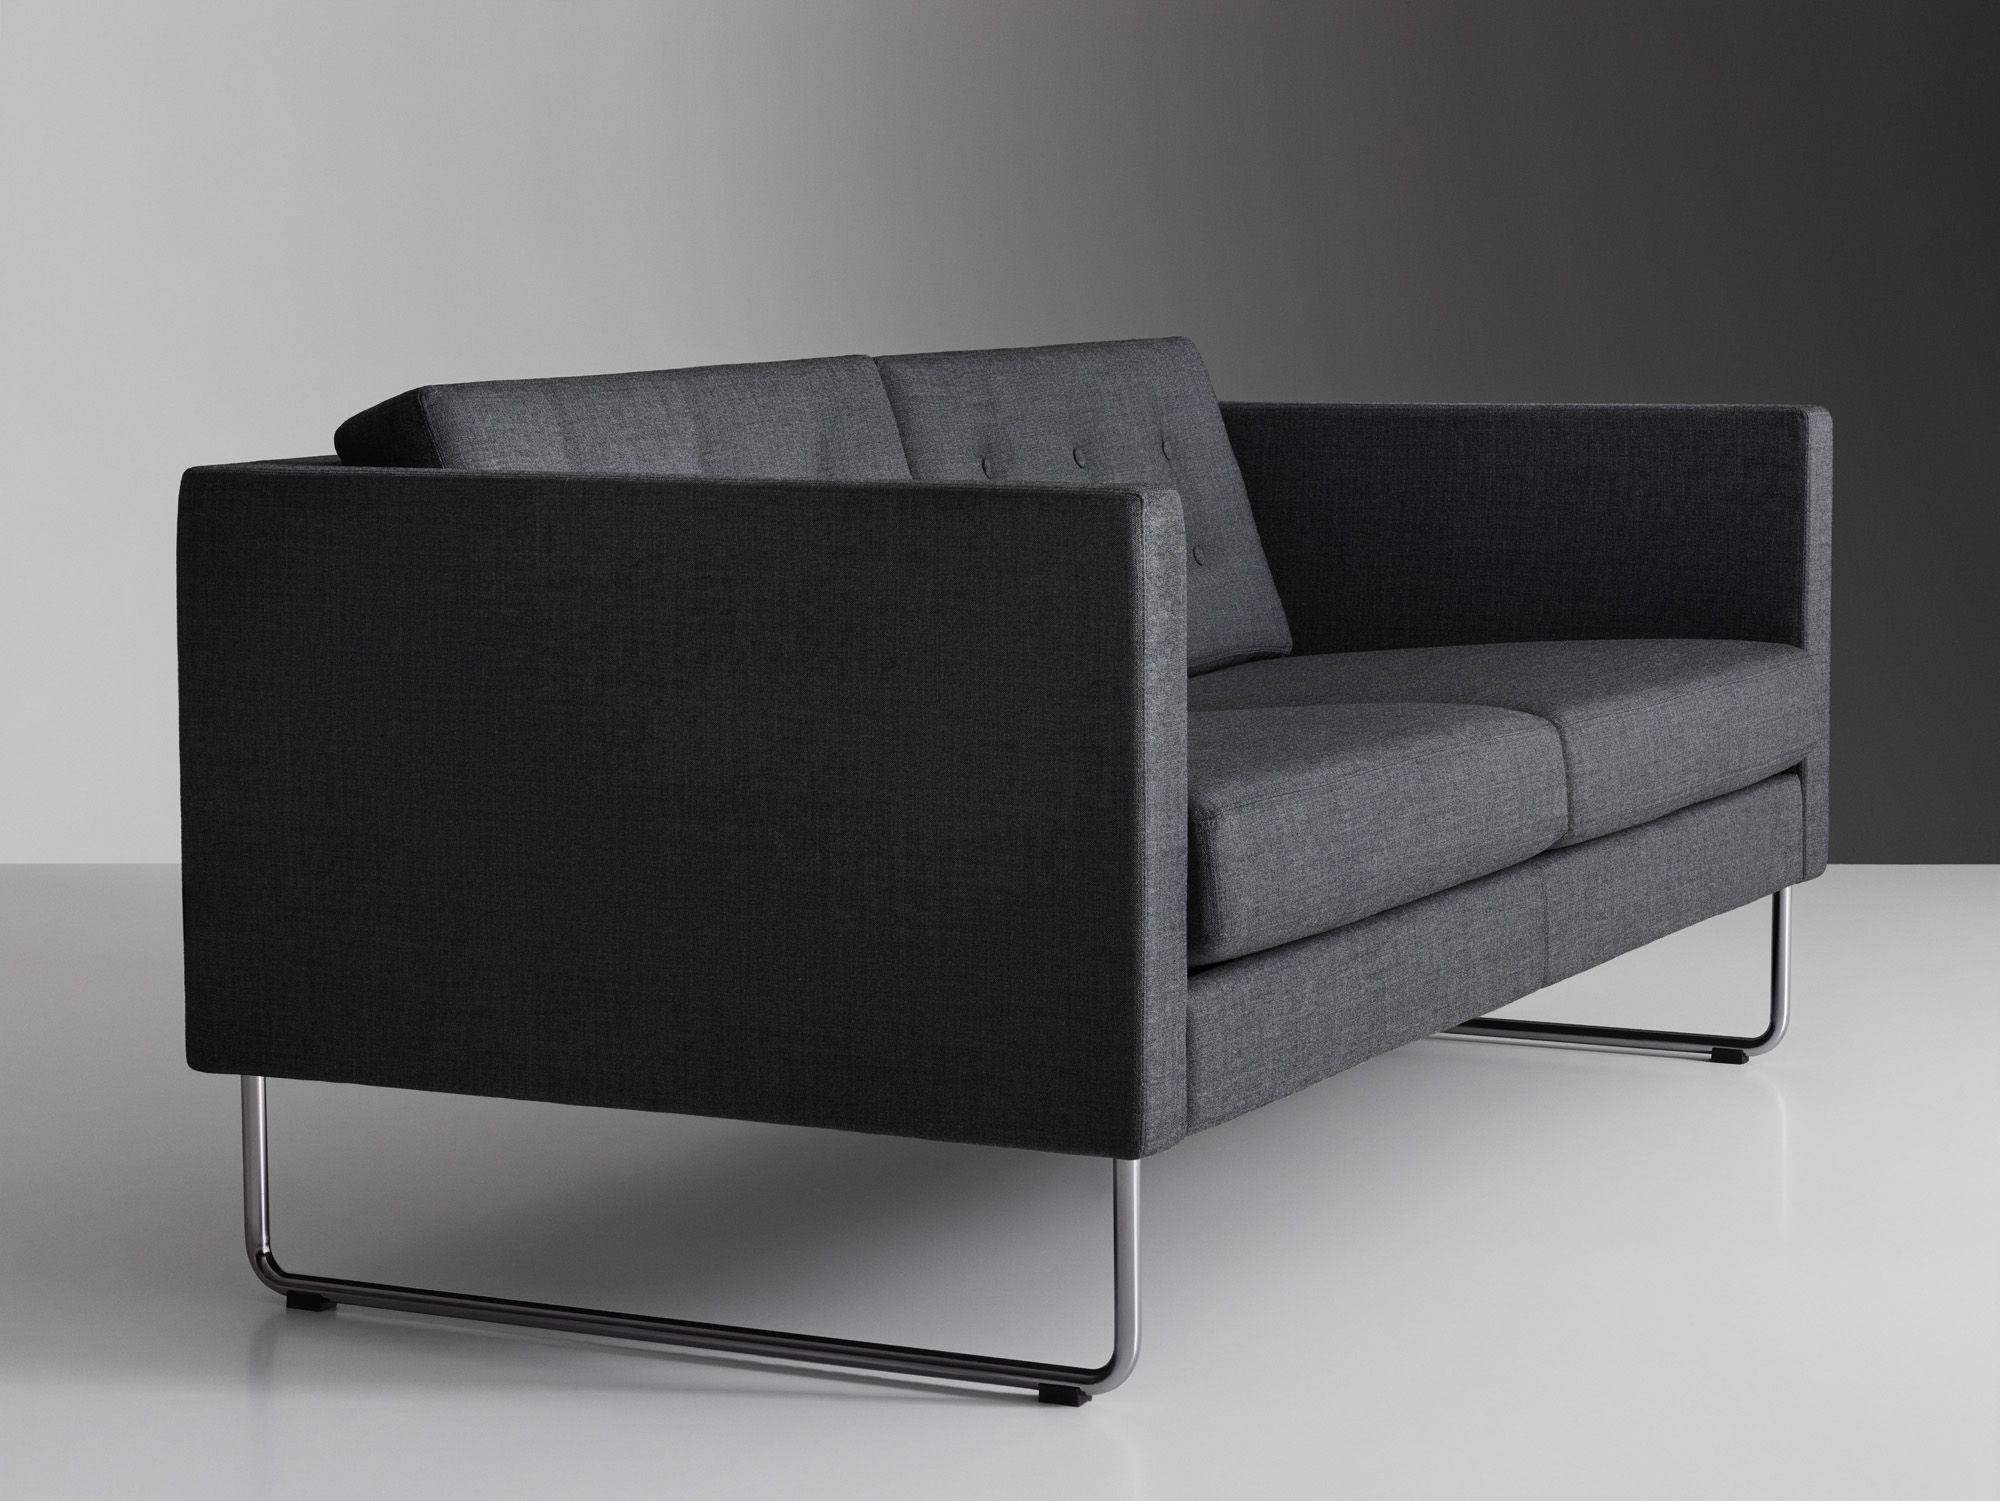 Madison U2013 Corner Sofa, 2 Seater Sofa And Easy Chair By Leila Atlassi For